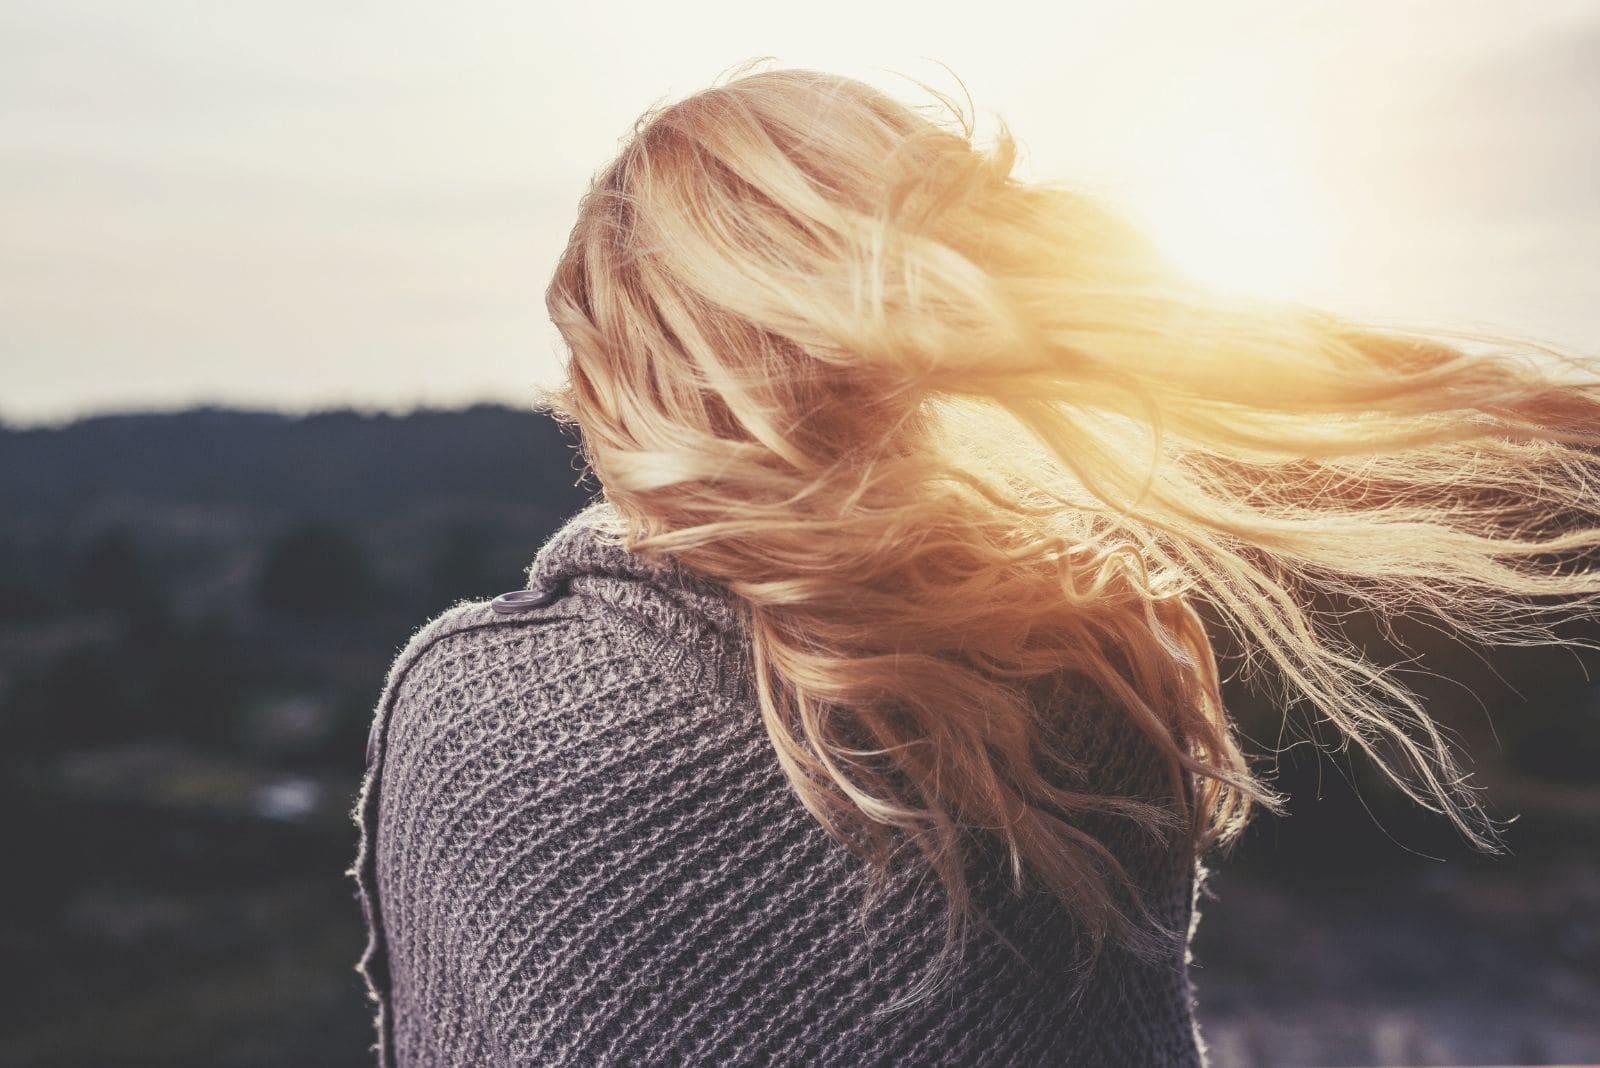 woman showing her back while facing the sunrise with blonde hair blown by the wind